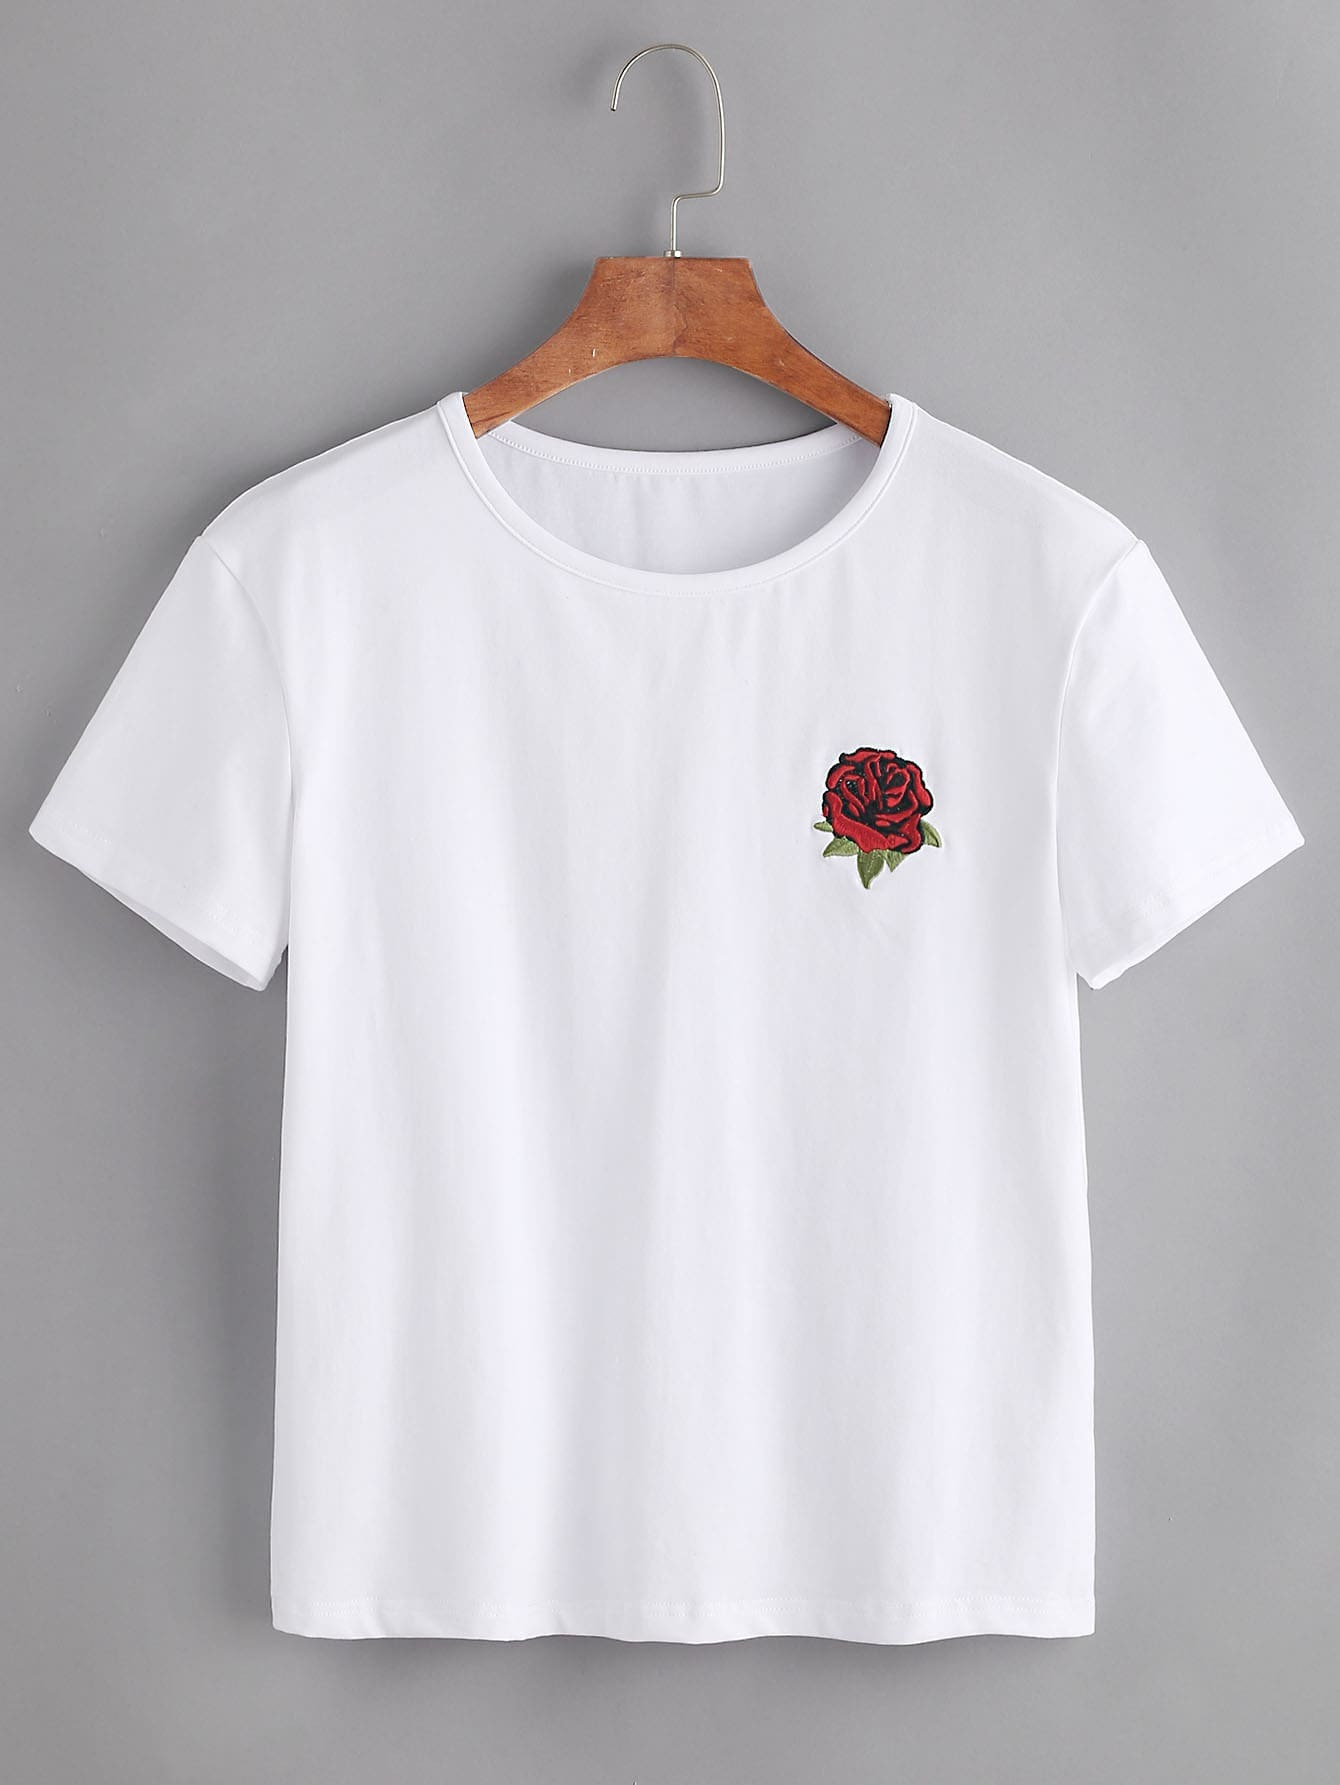 T shirt printing at white rose - White Rose Embroidered Short Sleeve T Shirt Pictures